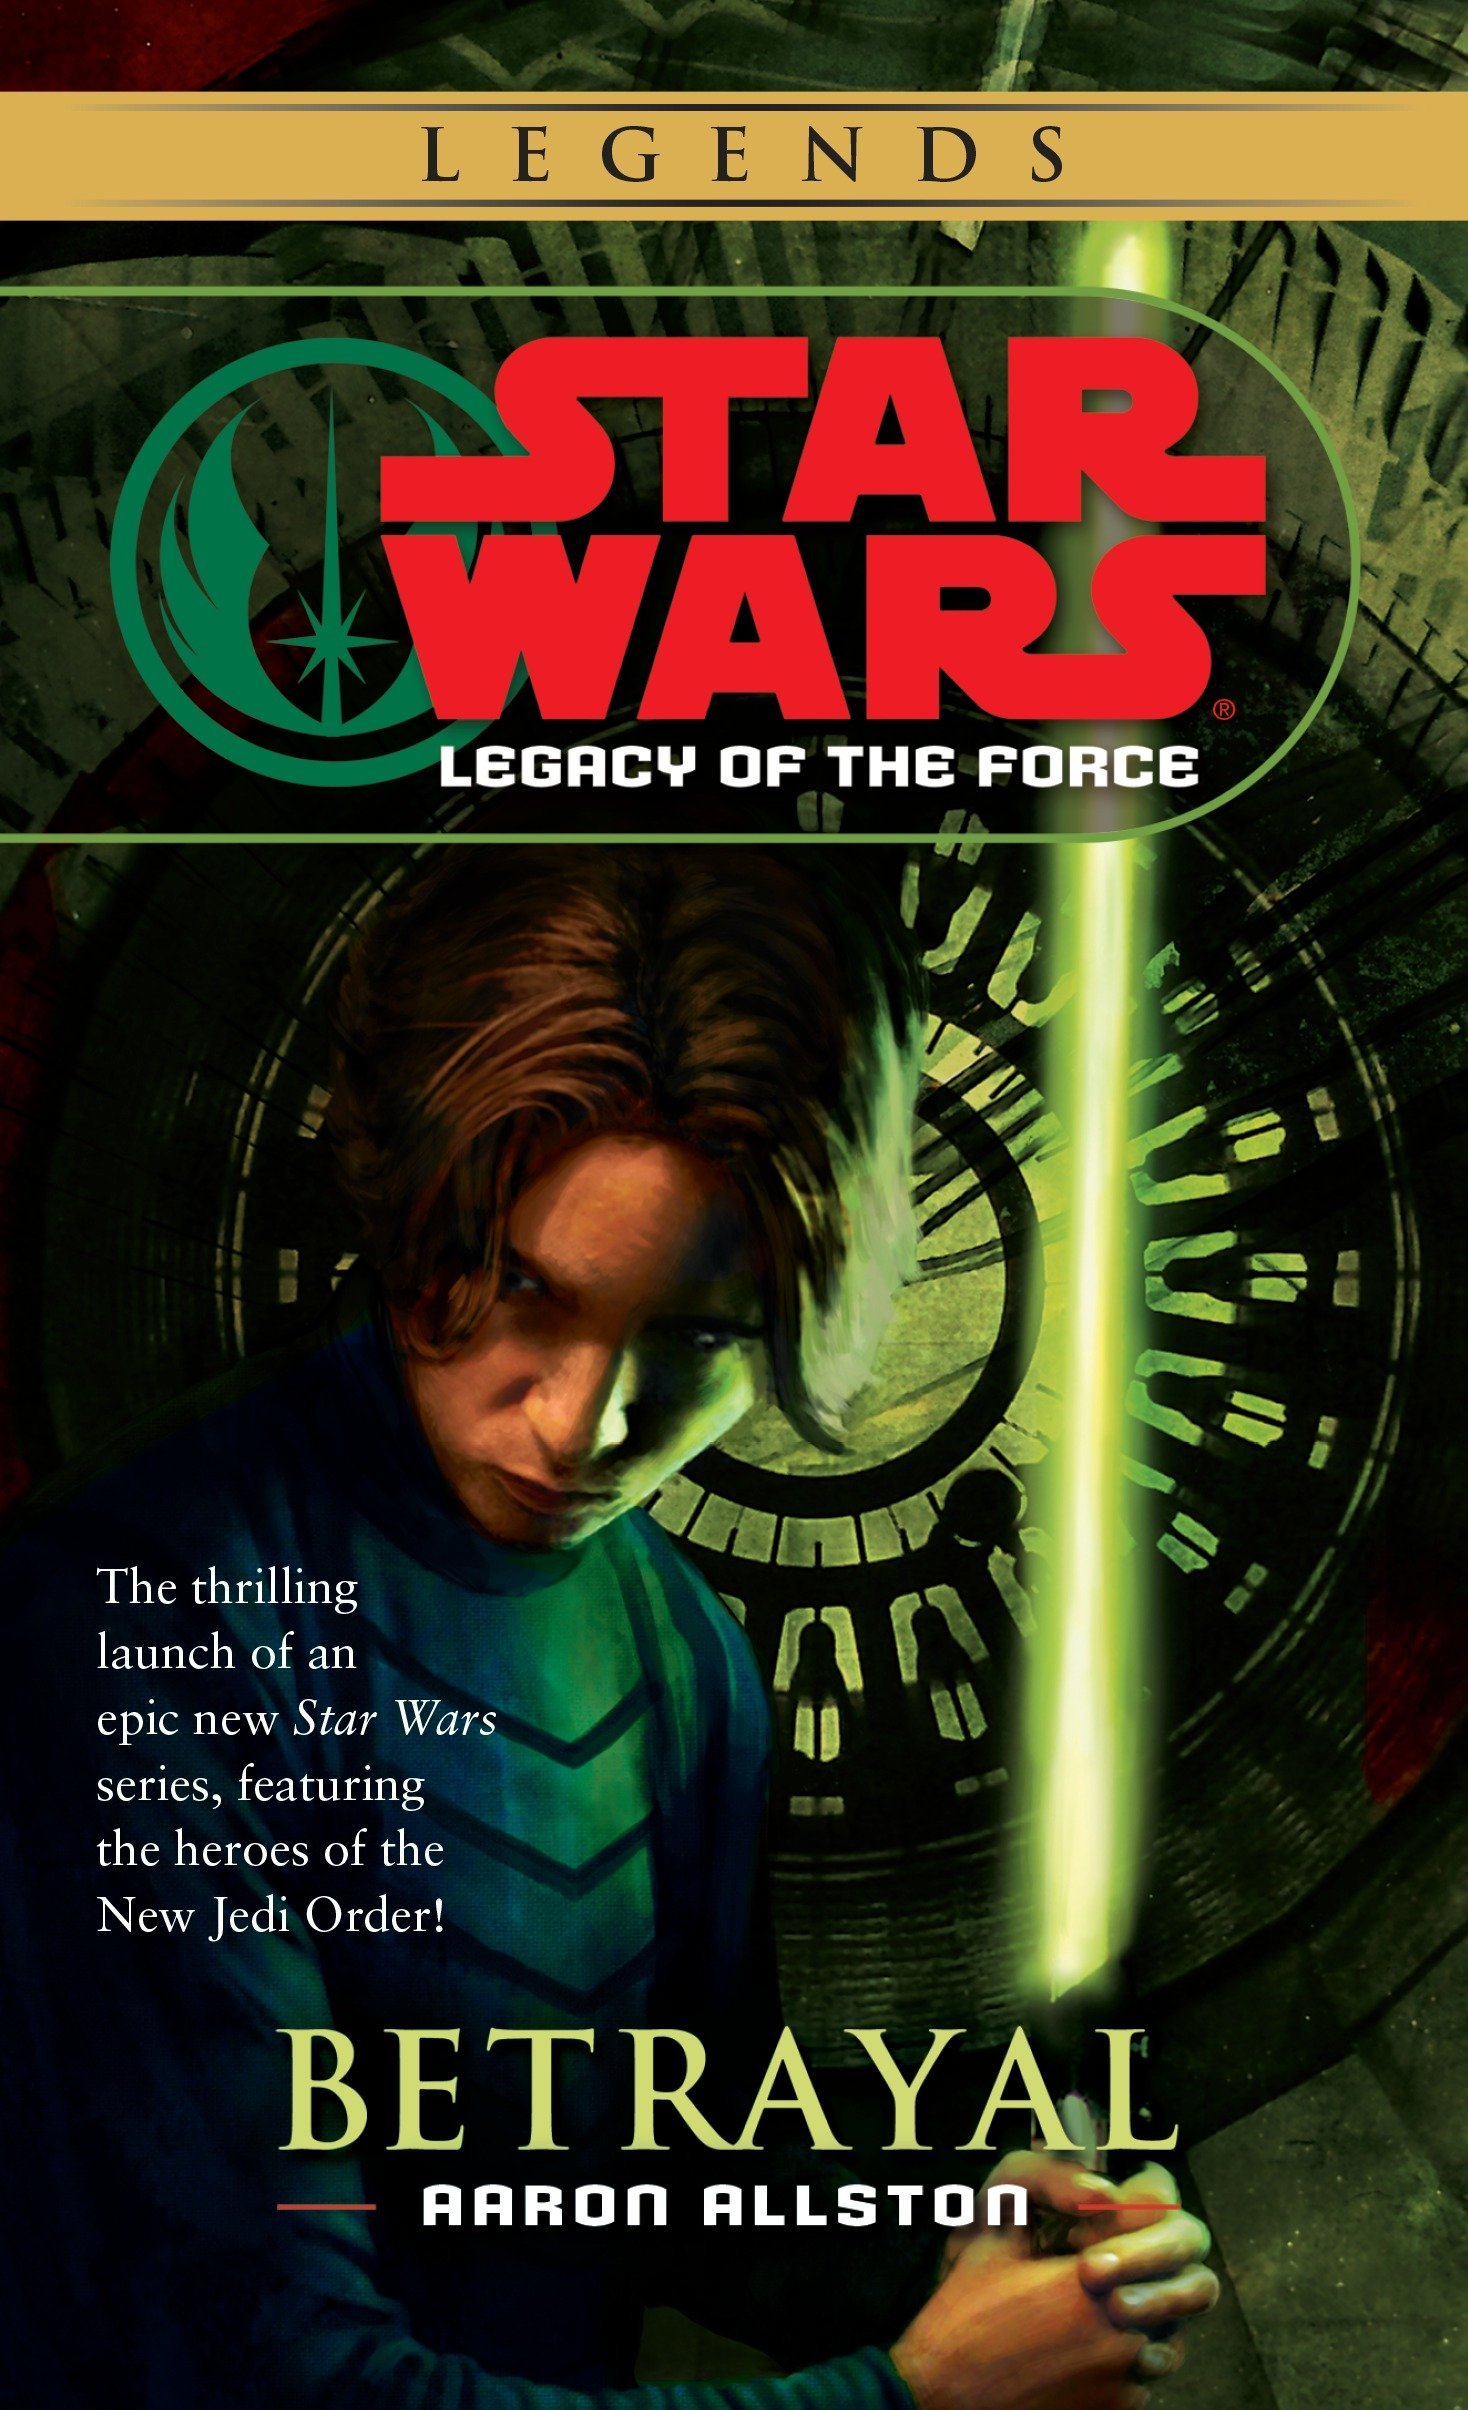 Betrayal (Star Wars: Legacy of the Force, Book 1): Aaron Allston:  9780345477354: Amazon.com: Books